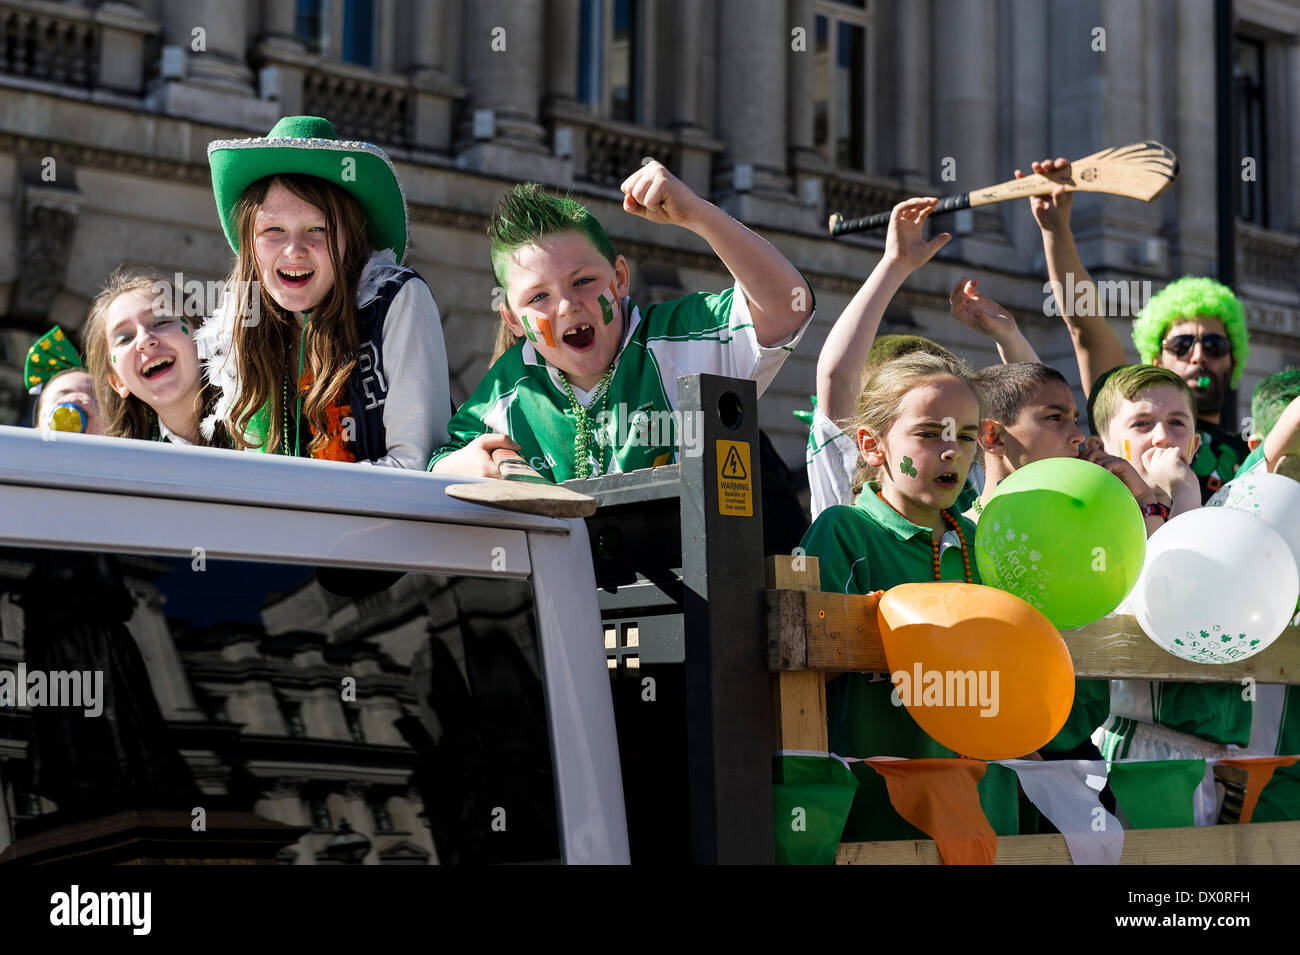 London, UK. 16 March 2014. Children enjoying the annual St Patrick's day parade in London; Photographer:  Gordon Scammell/Alamy Live News - Stock Image